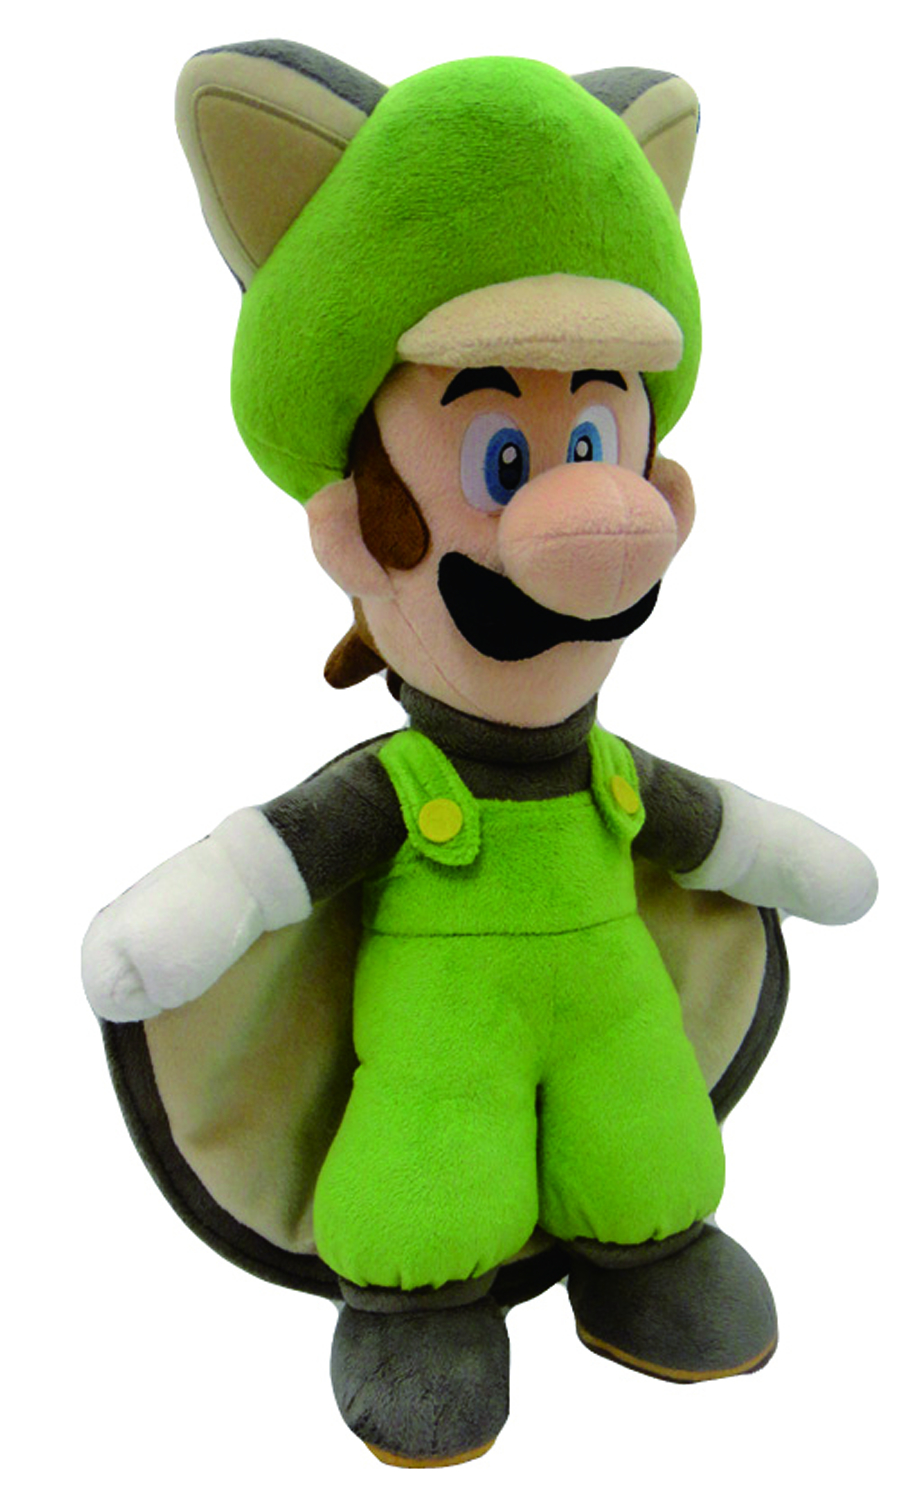 SUPER MARIO BROS FLYING SQUIRREL LUIGI 15IN PLUSH